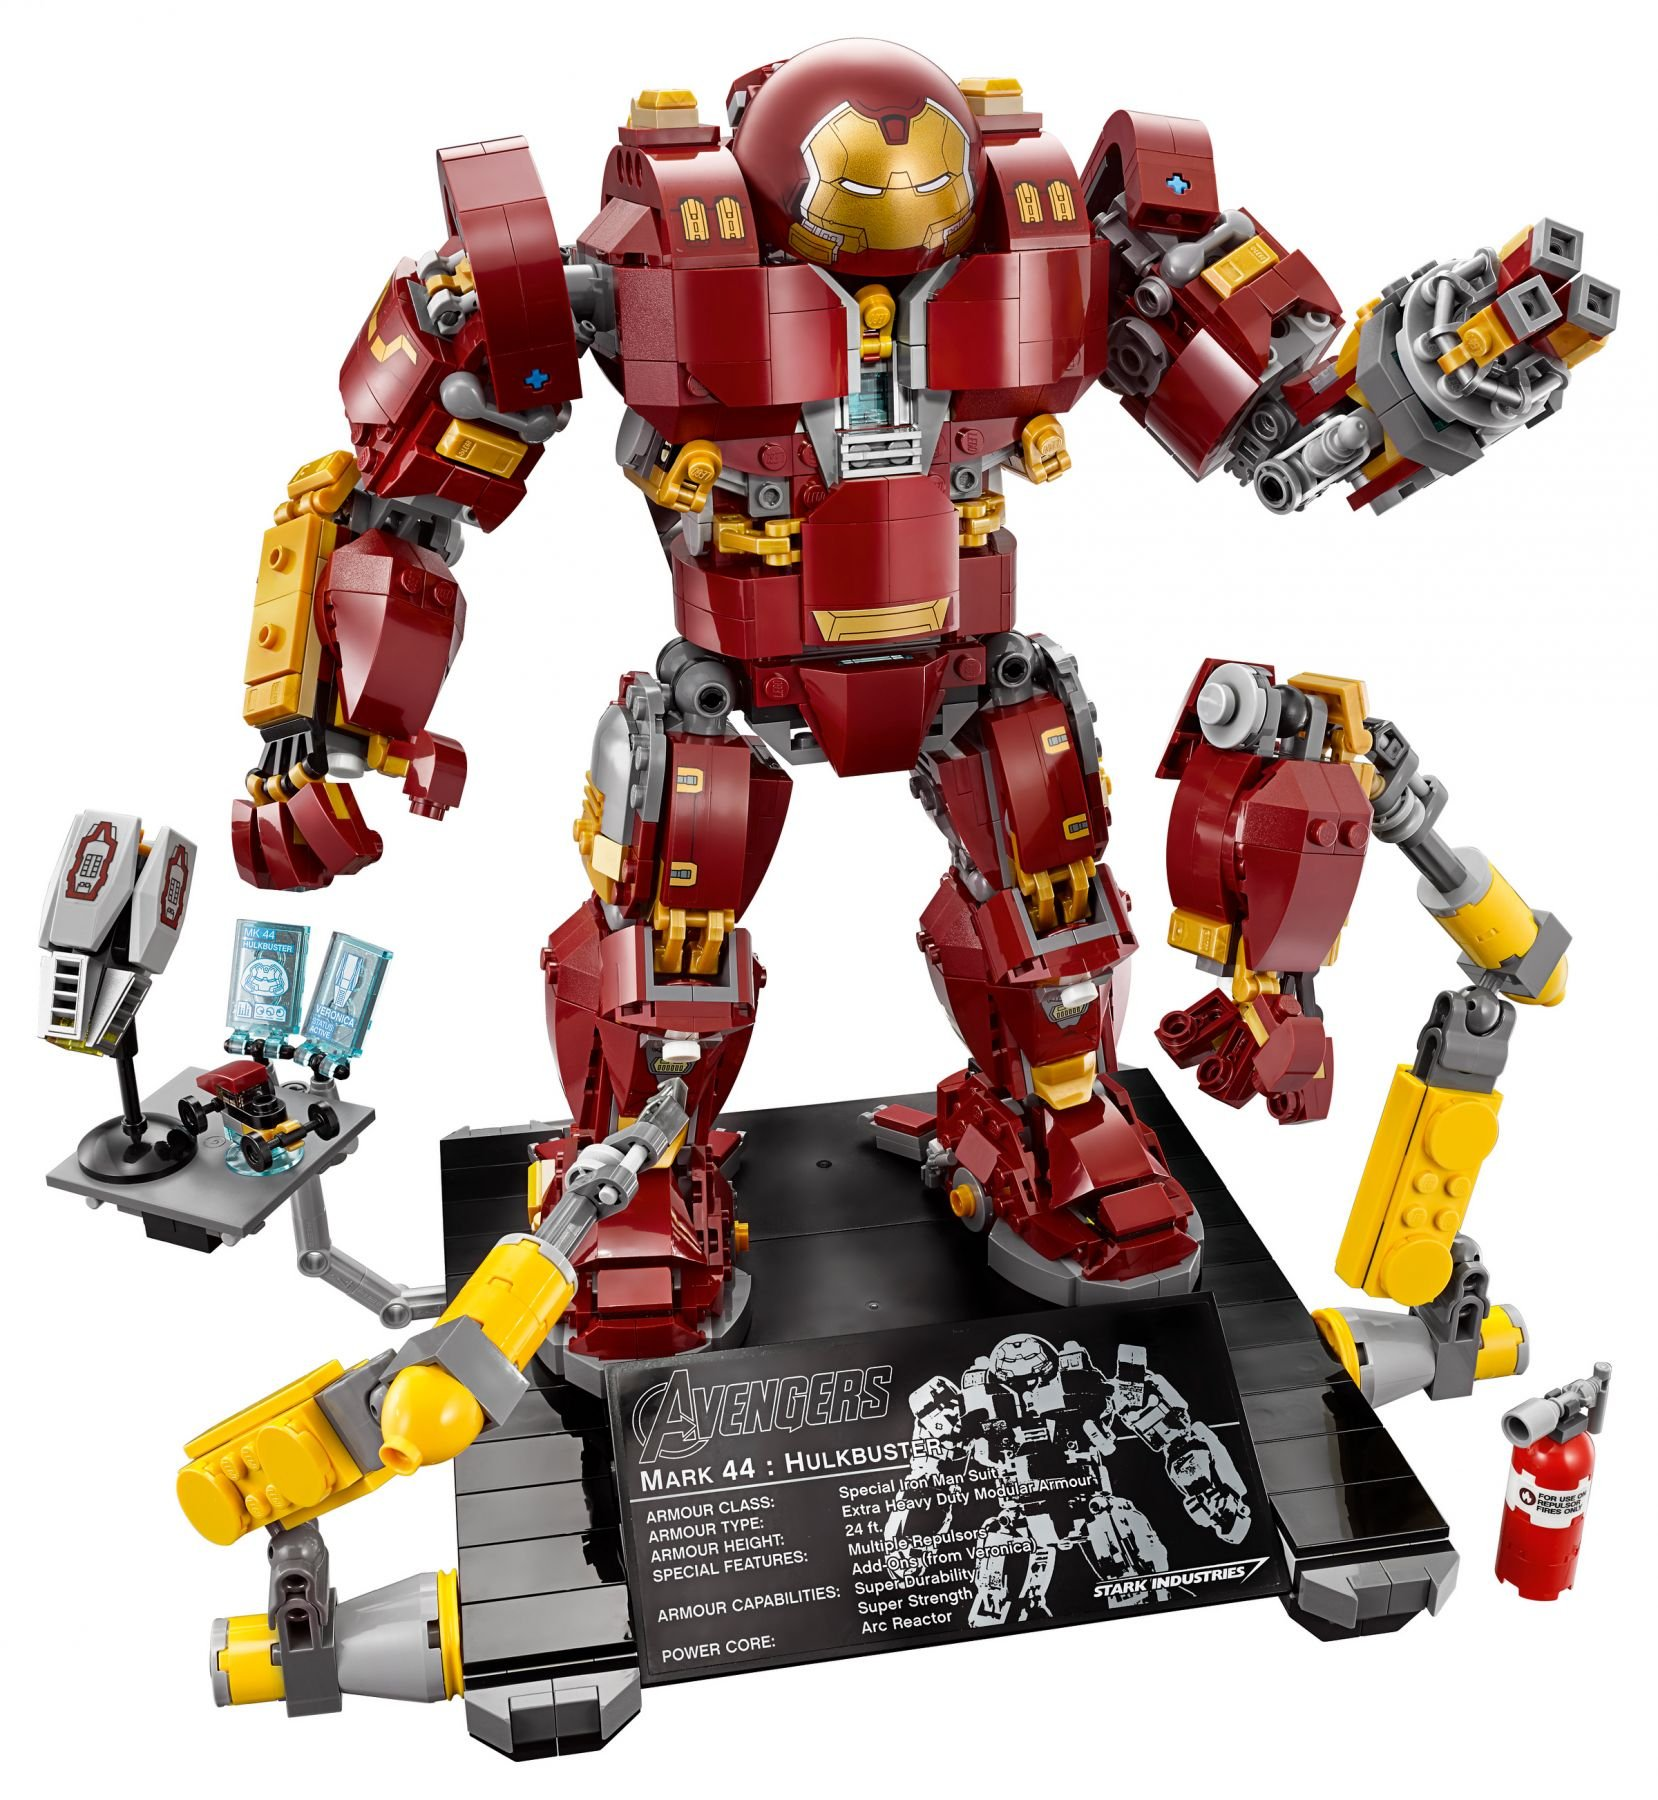 LEGO Super Heroes 76105 Marvel Avengers: Infinity War - The Hulkbuster: Ultron Edition